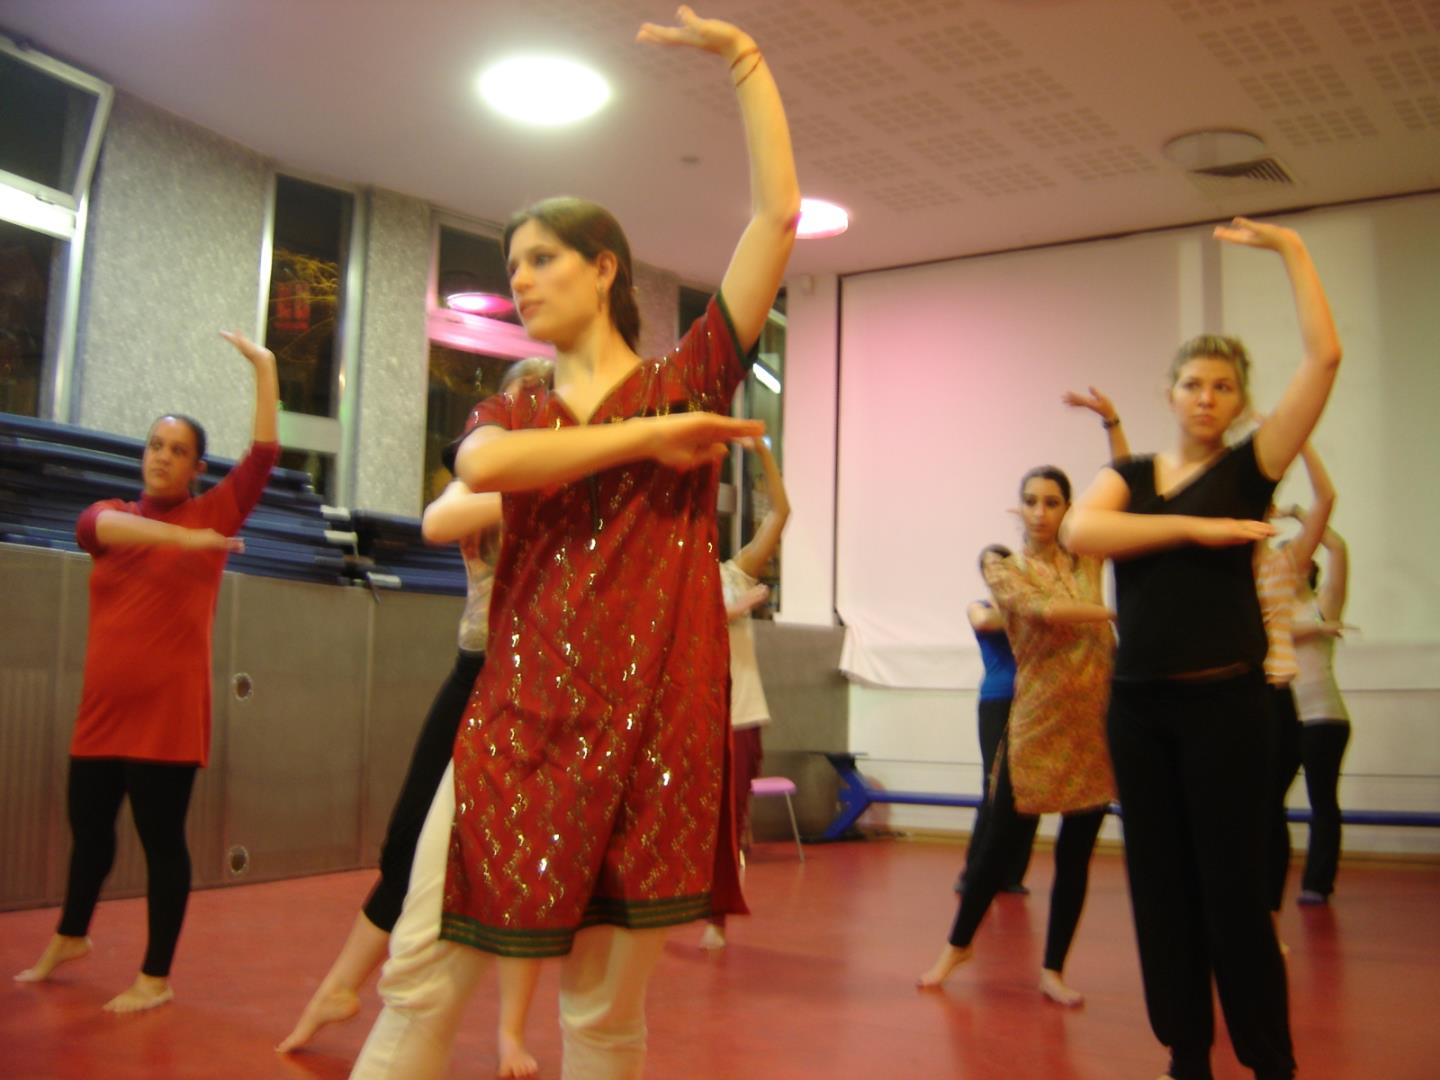 Danse indienne: bollywood et bolly-kathak - Association Jugalbandi